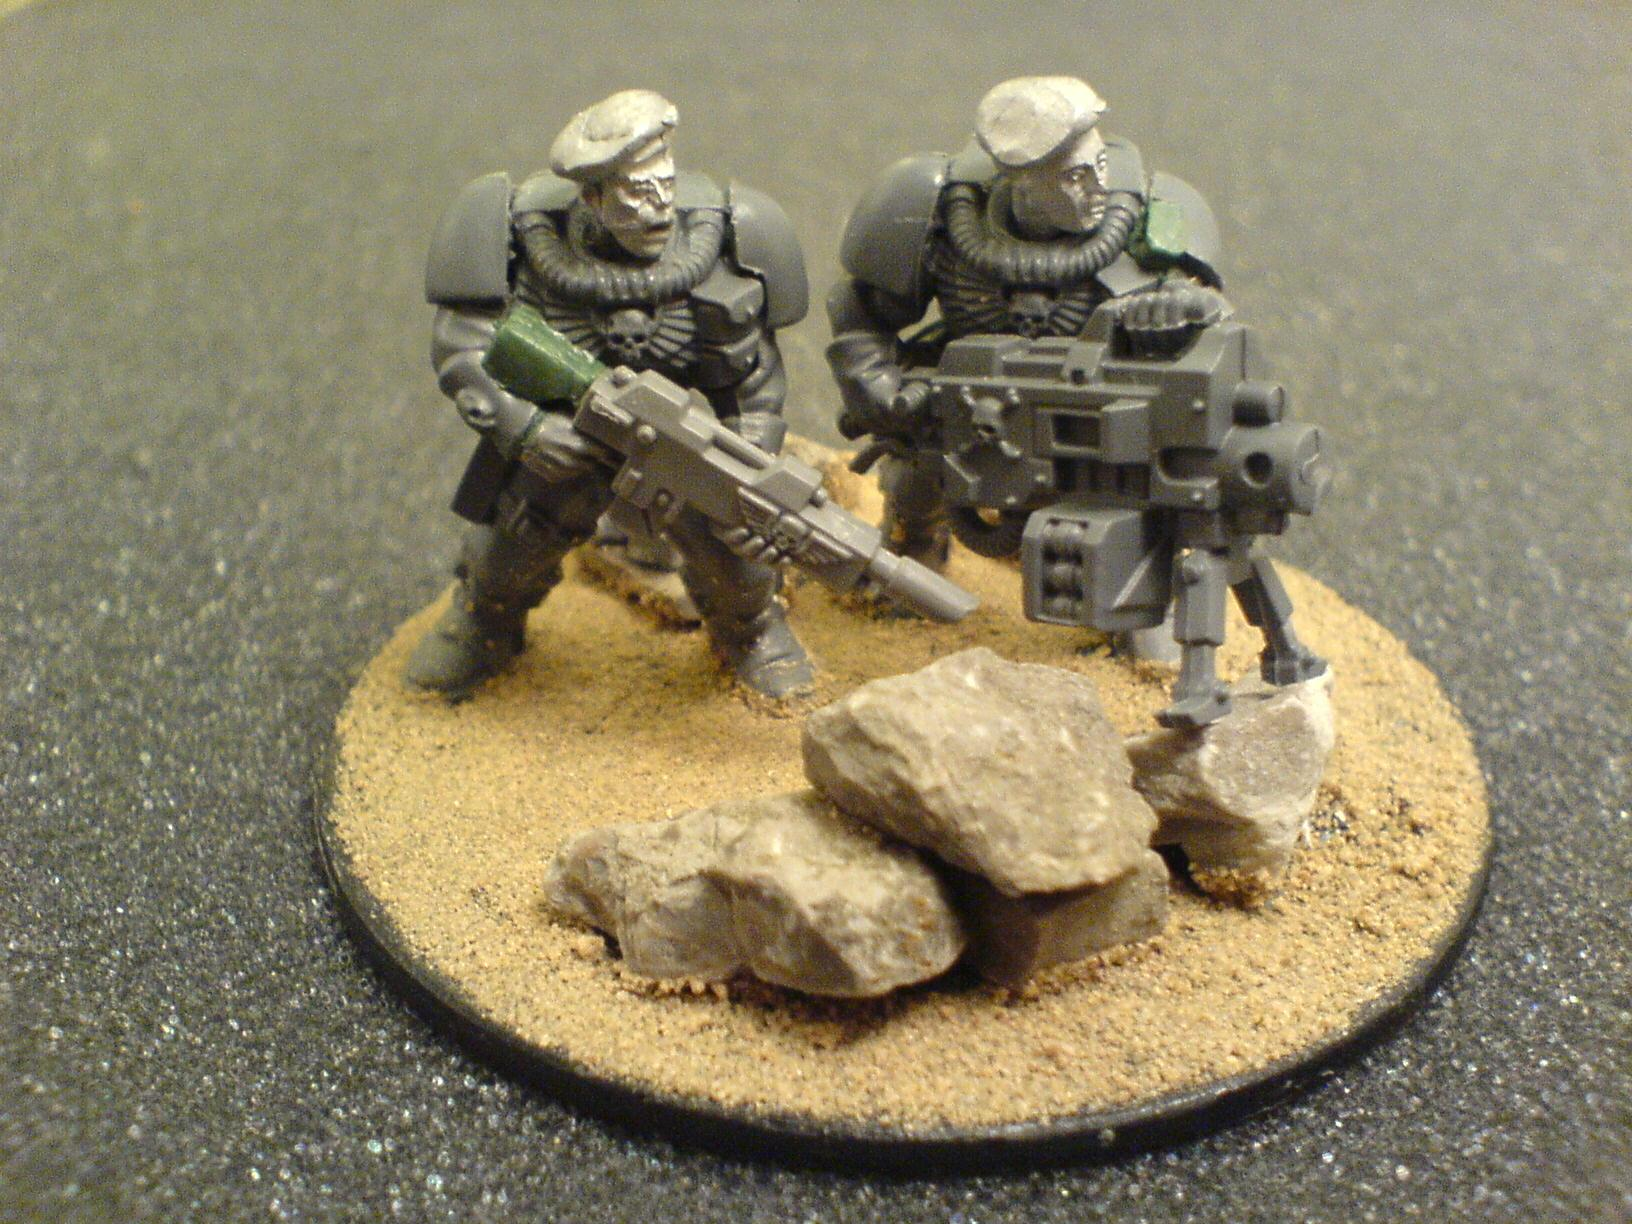 Carapace, Carapace Armour, Conversion, Drop Troops, Imperial Guard, Warhammer 40,000, West Wind, Work In Progress